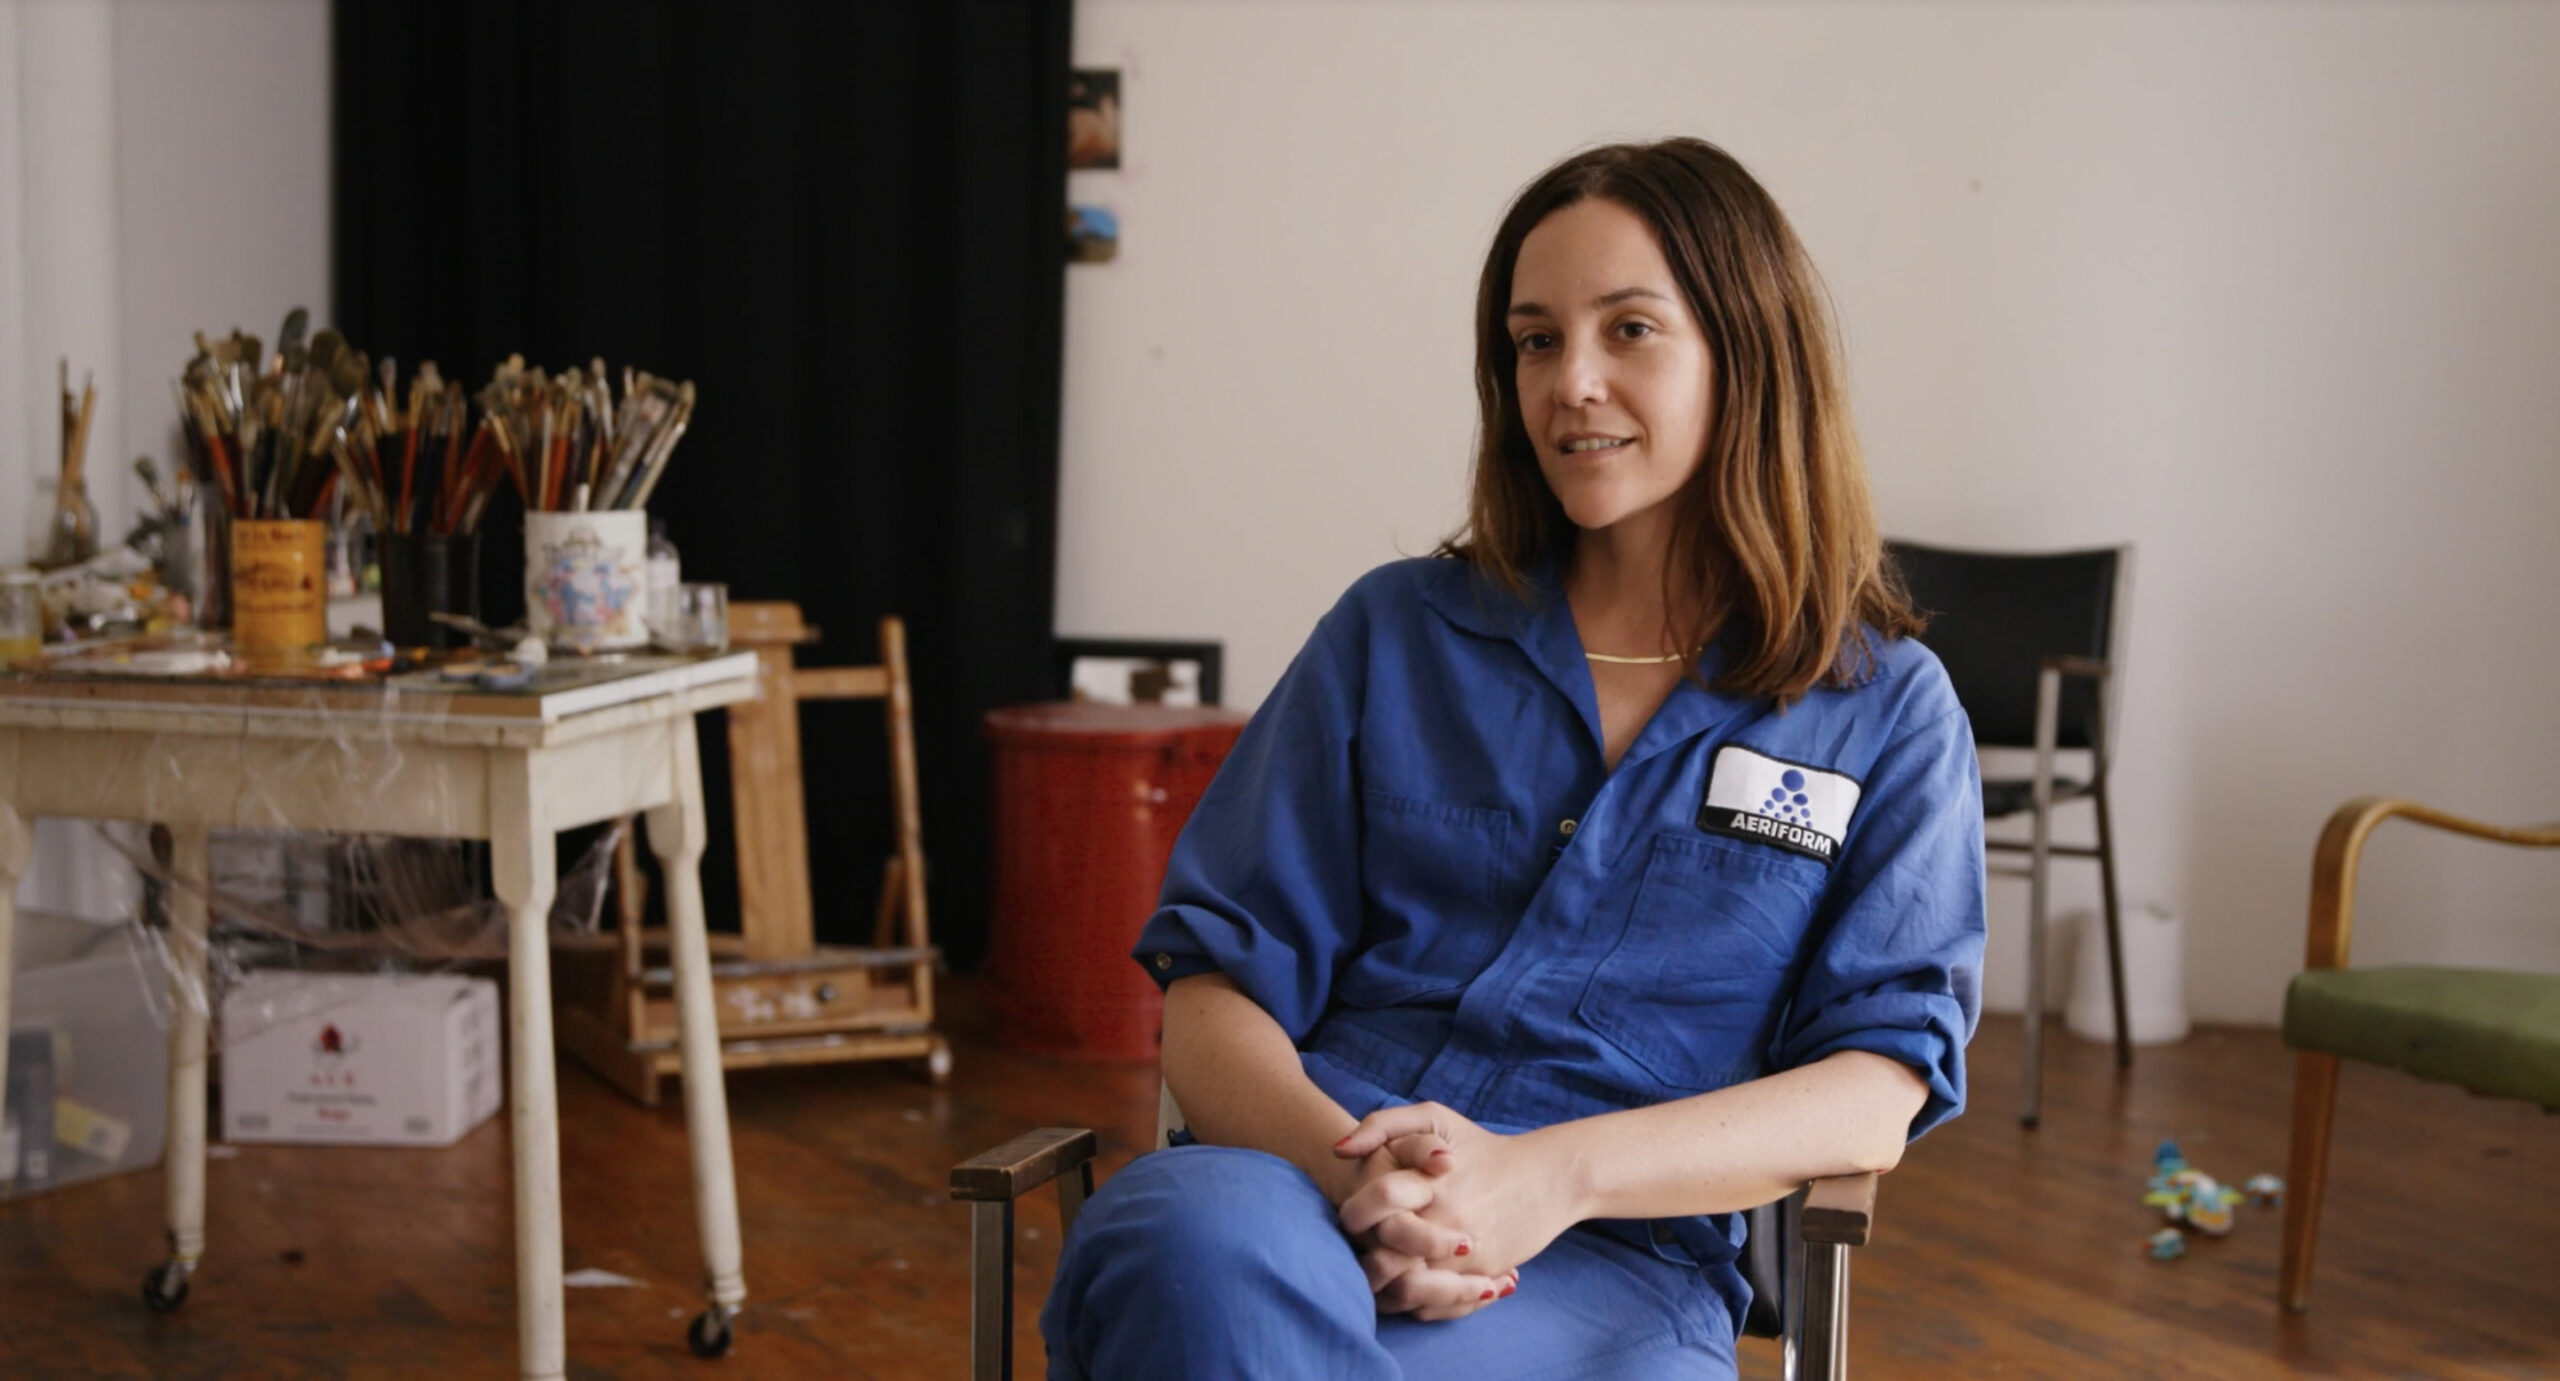 Artist Jenna Gribbon as seen in Kelcey Edwards documentary The Art of Making It!  Image Courtesy of Wischful Thinking Productions